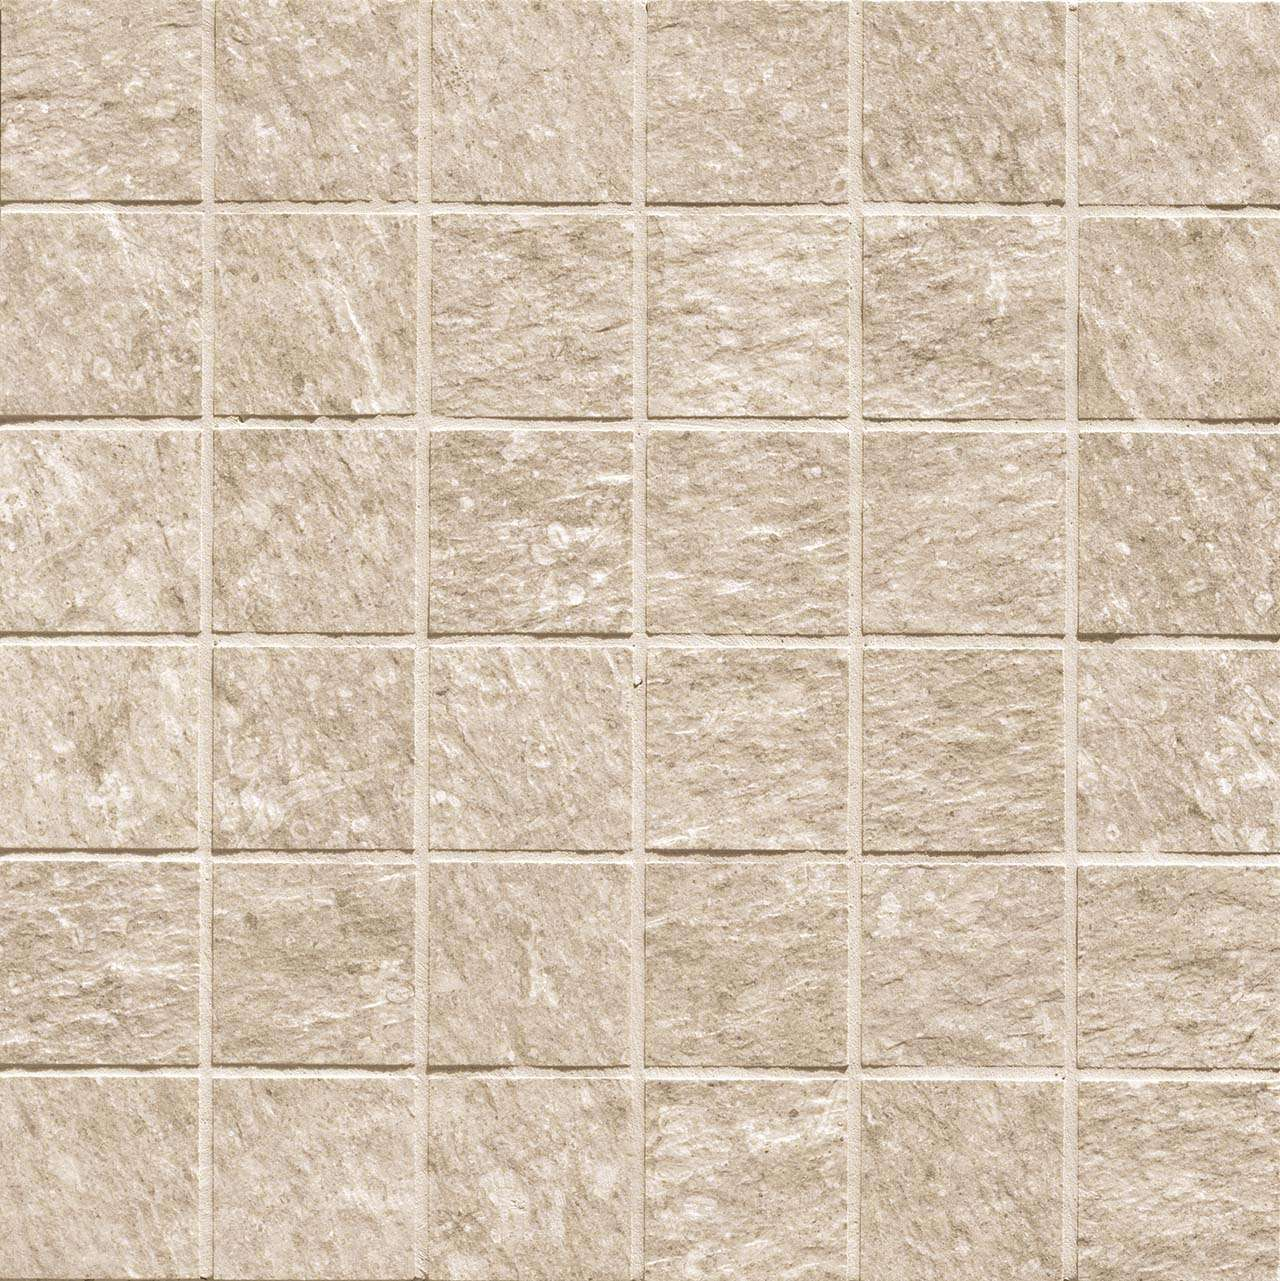 Fap Nord Natural Gres Macromosaico Out 30x30